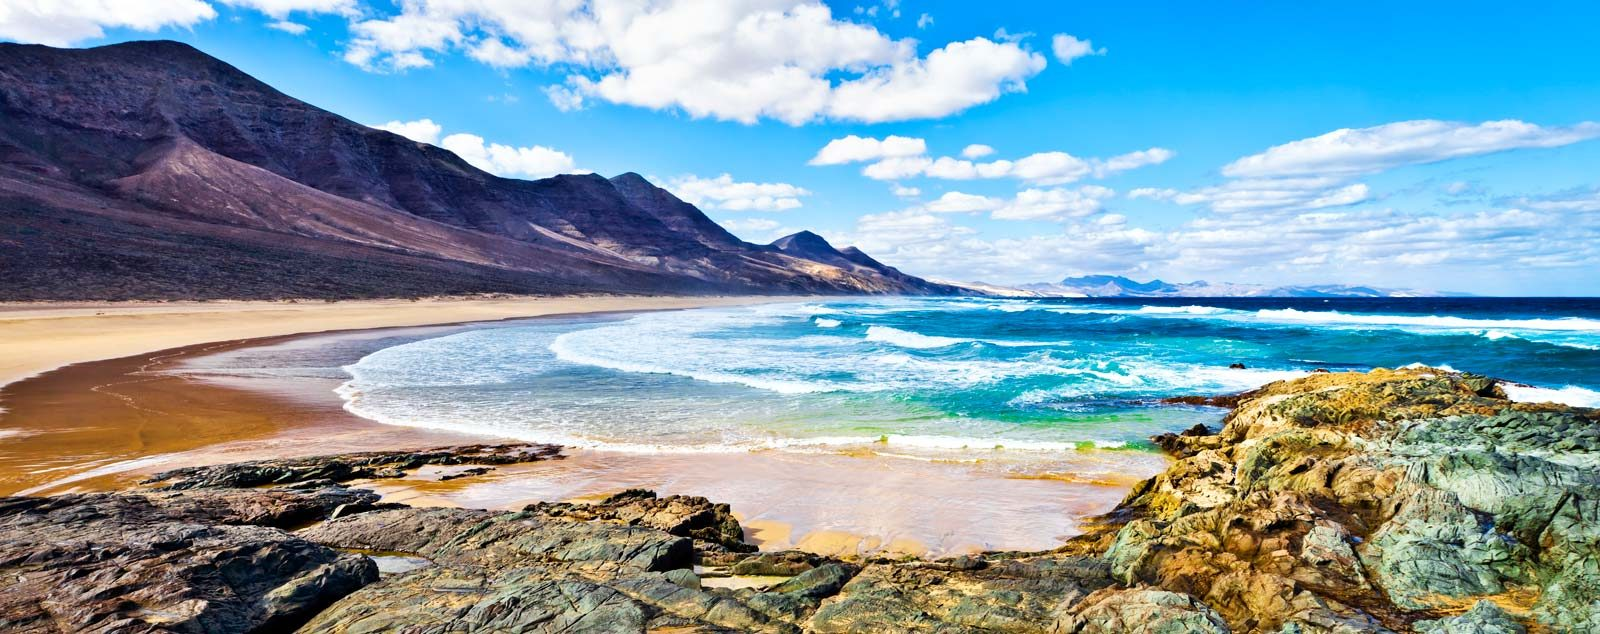 Dark rocky hills lead to pristine yellow sands that are being touched by light blue waves